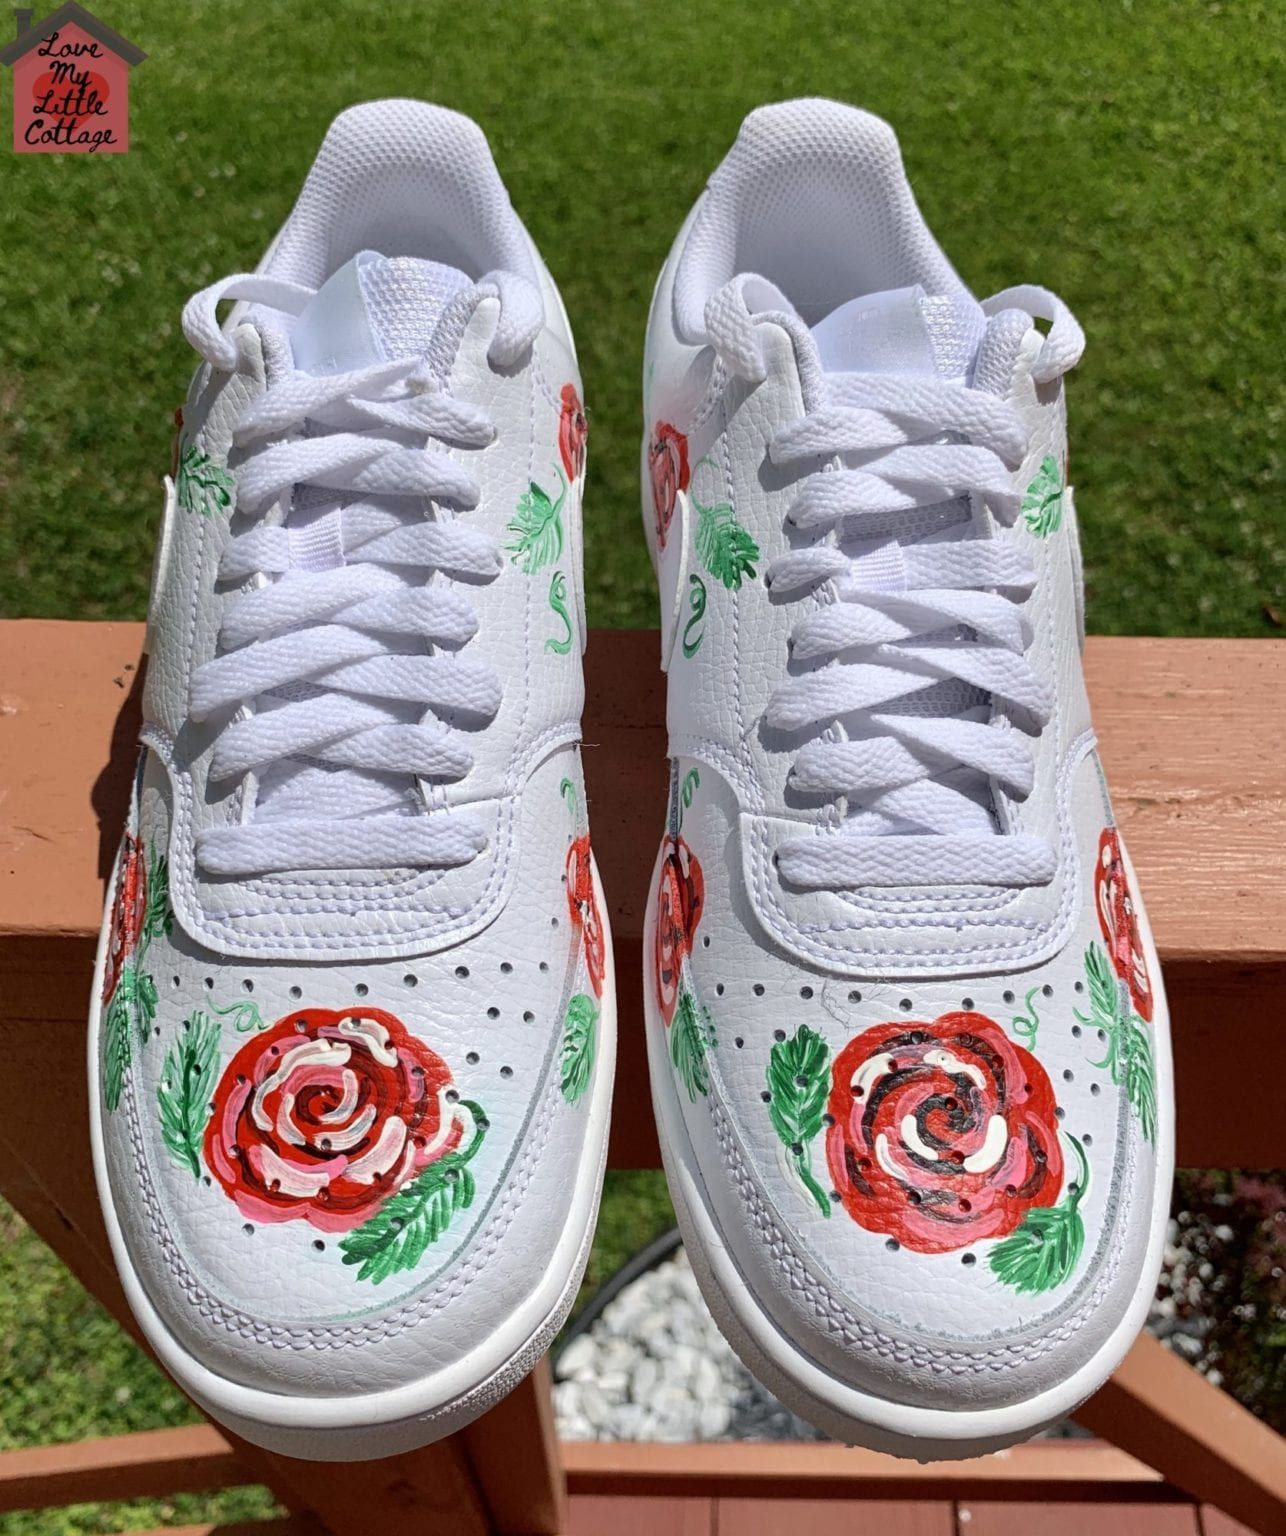 Customized Rose Sneakers lovemycottage in 2020